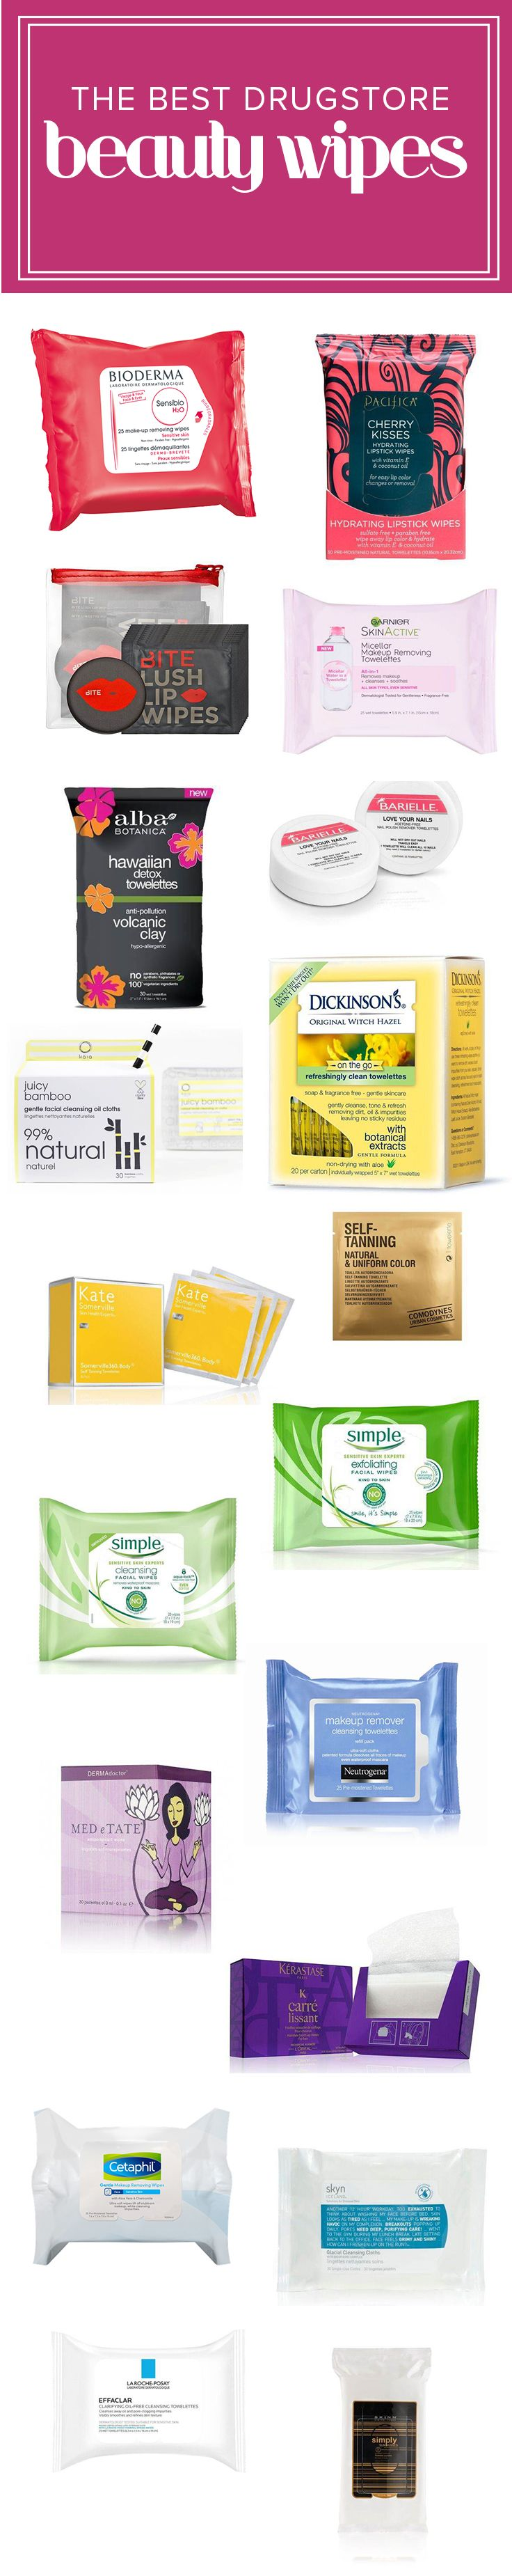 These drugstore wipes can be used for cleaning, removing makeup and exfoliating. They're all affordable and great for traveling.